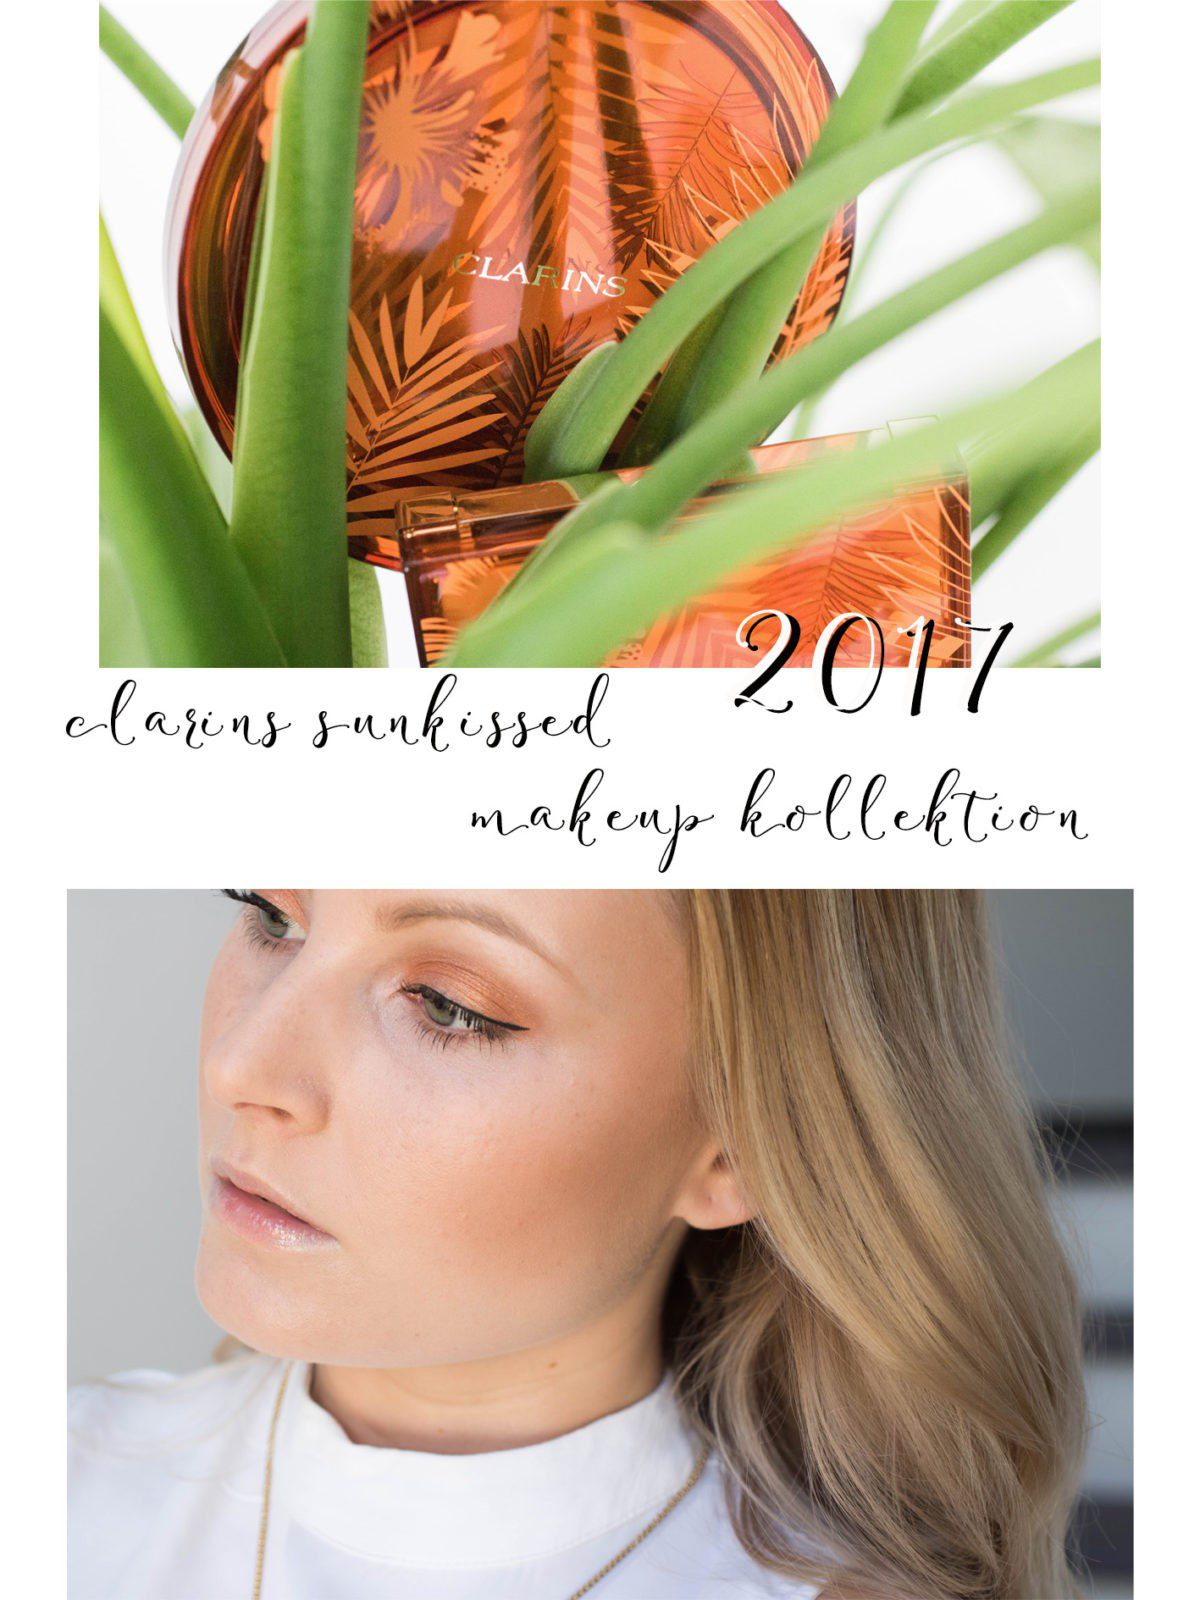 Clarins Sunkissed Makeup Kollektion 2017